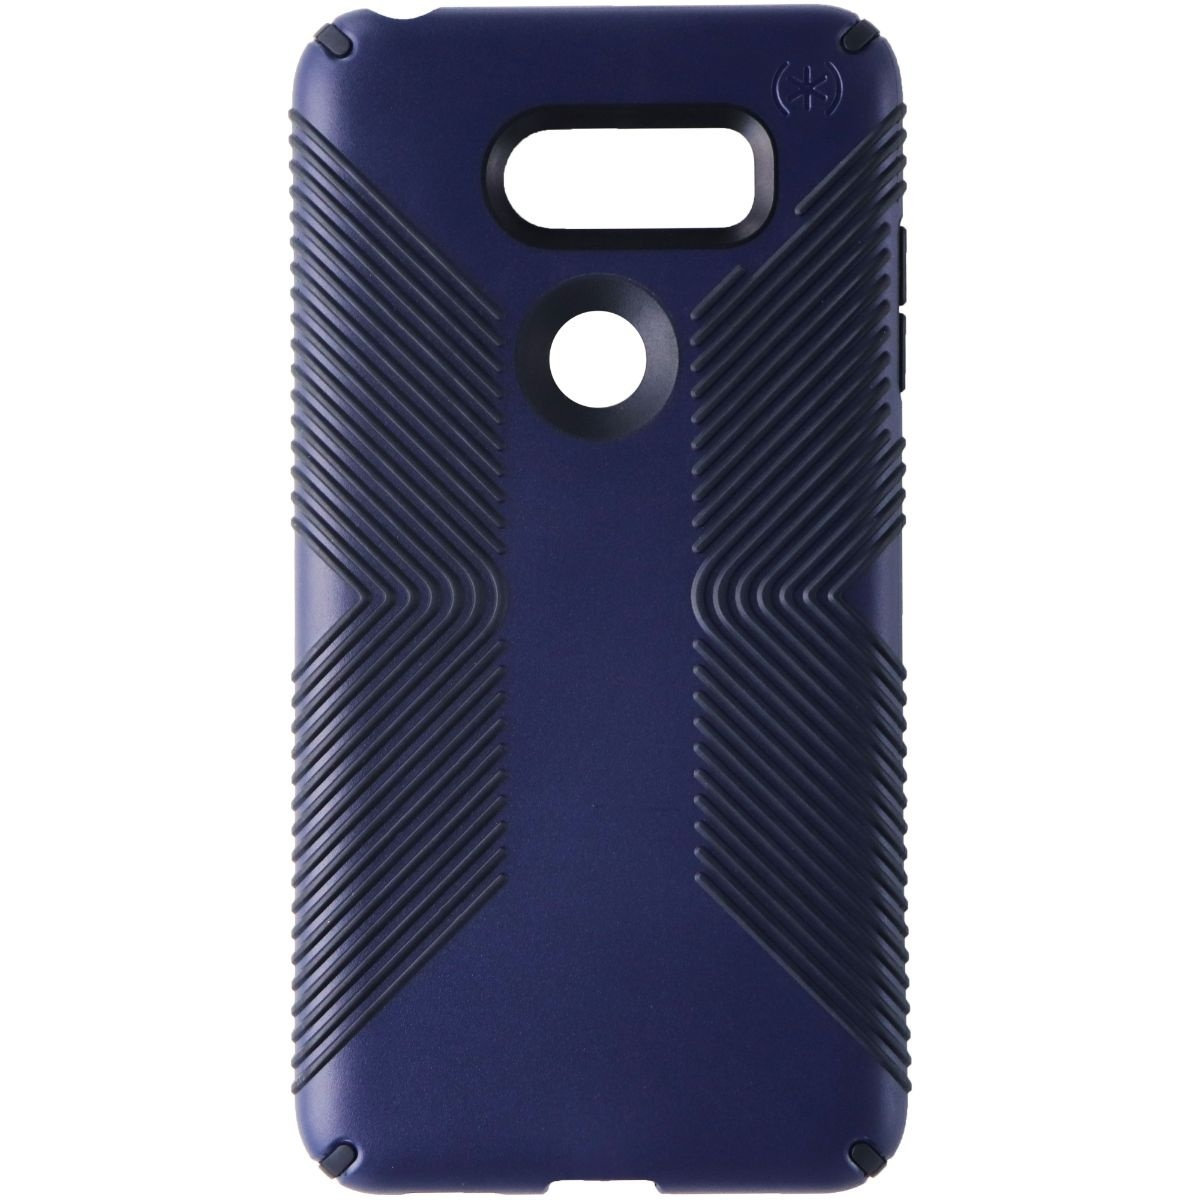 Speck Presidio Grip Phone Case for LG V30 - Eclipse Blue / Carbon Black